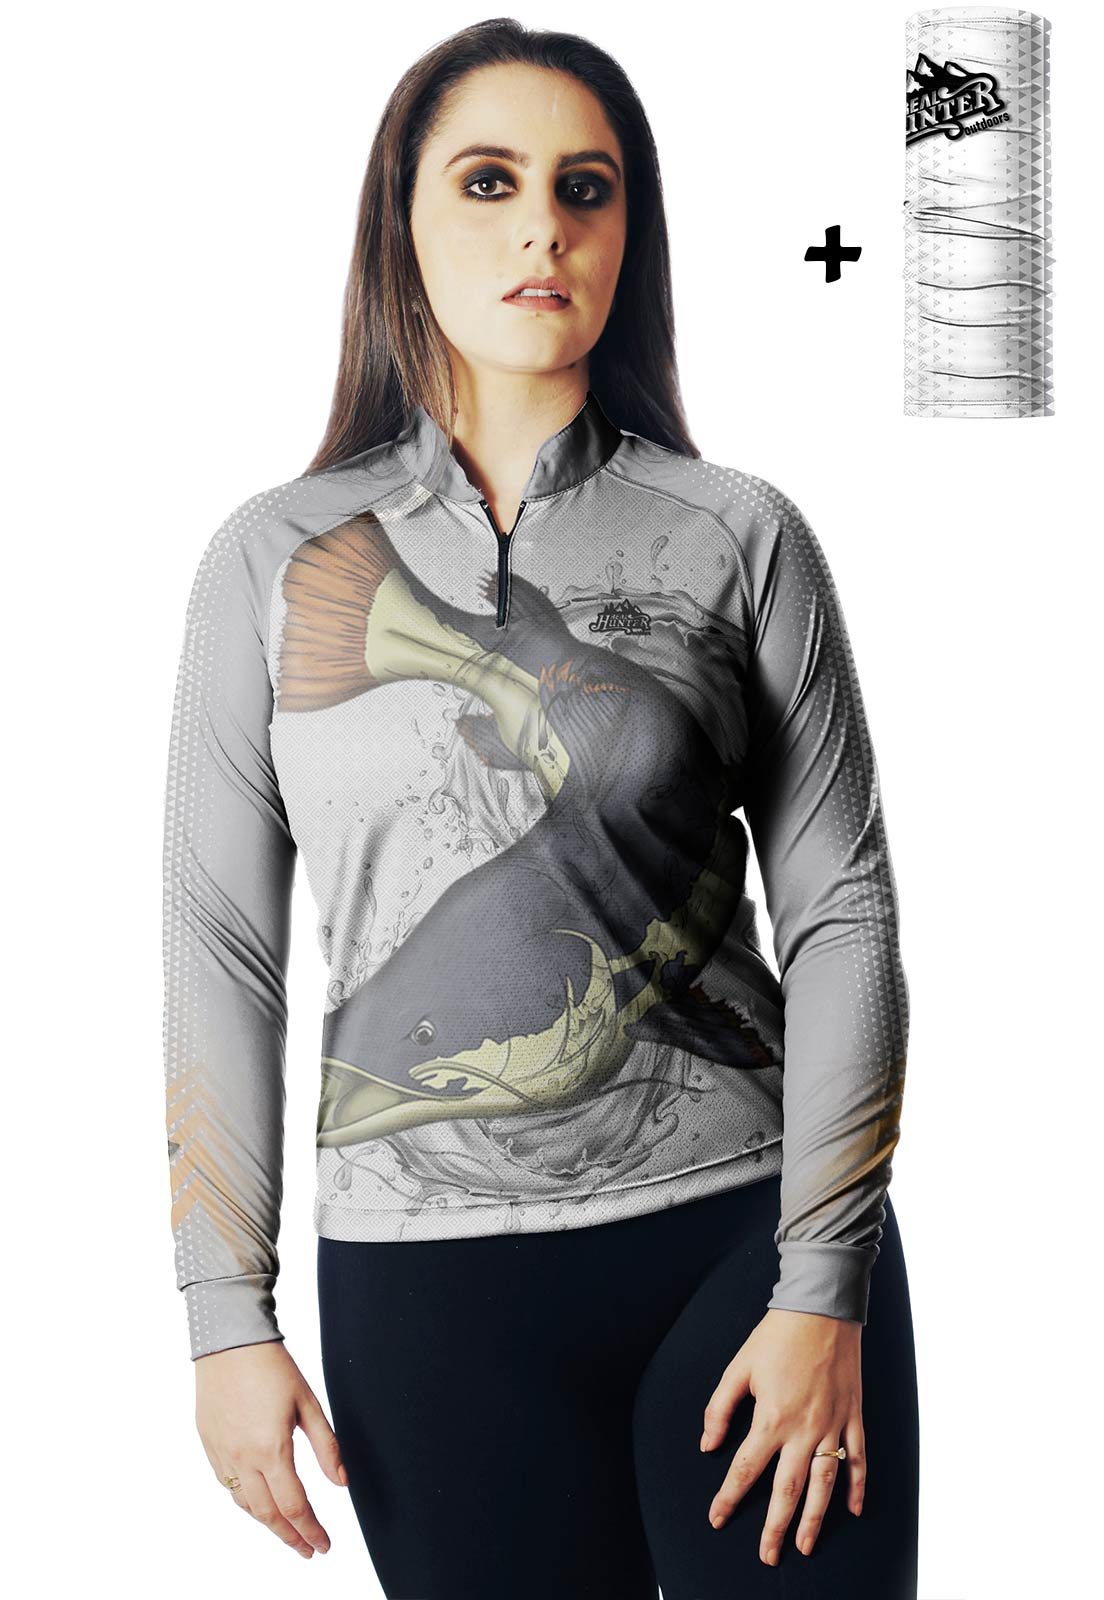 CAMISA DE PESCA FISH PIRARARA 01 FEMININA + BANDANA GRÁTIS  - REAL HUNTER OUTDOORS